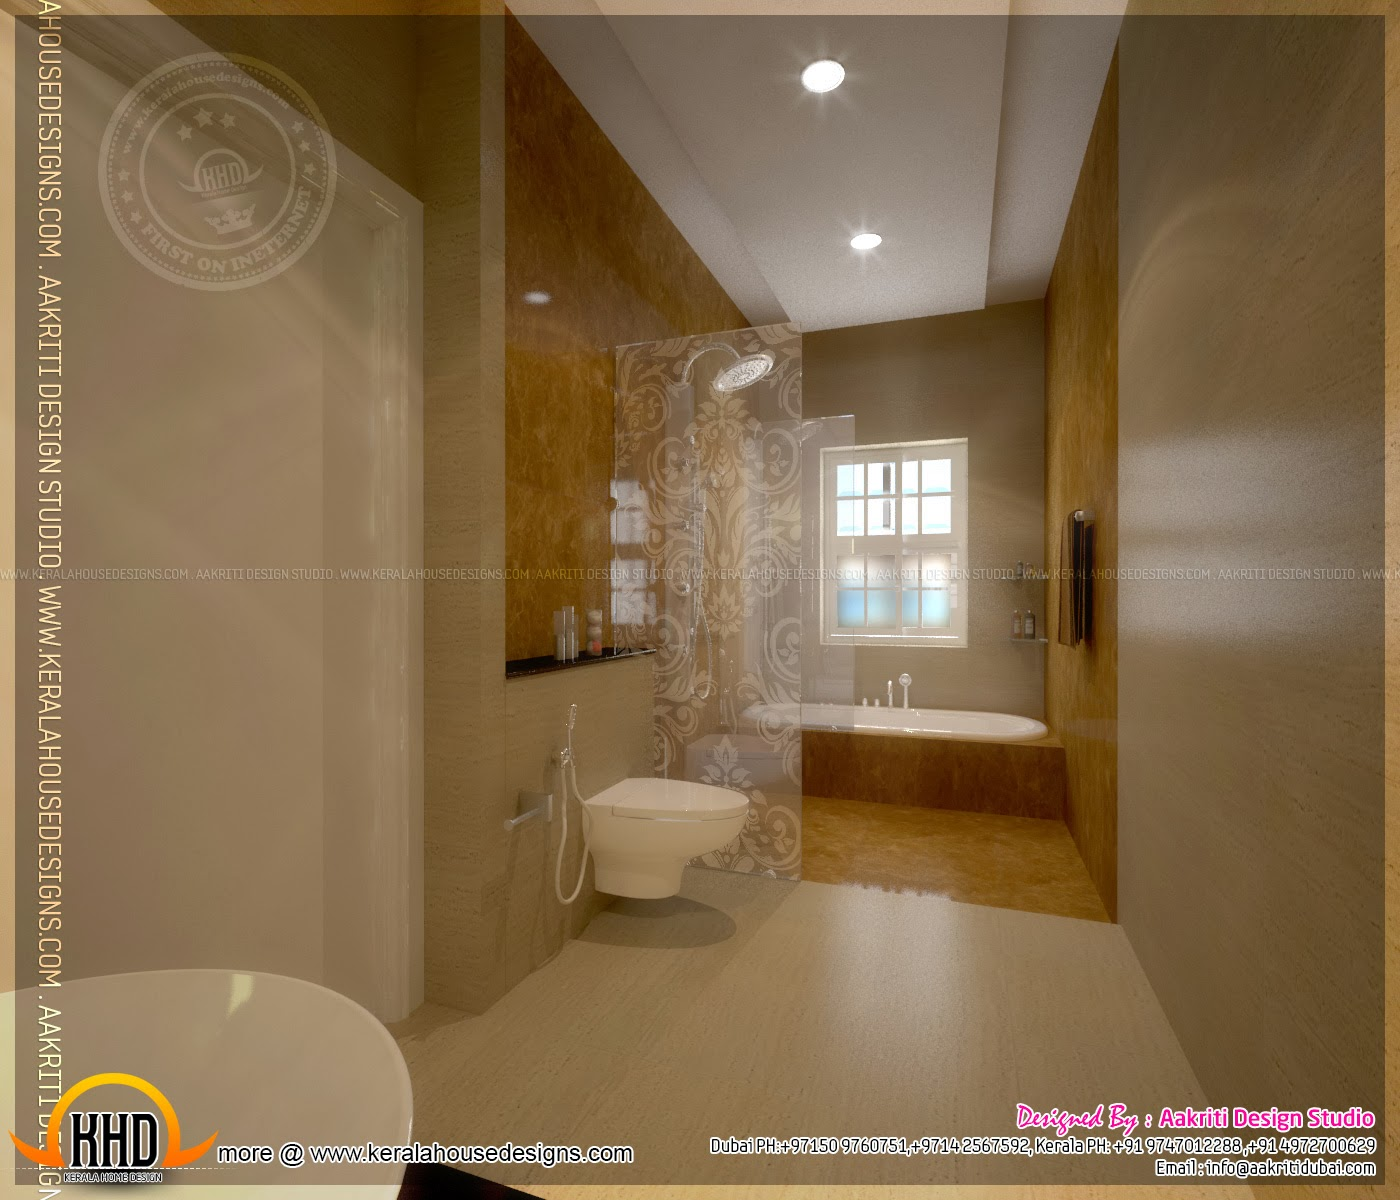 26 new bathroom tiles kerala price for Bathroom interior design chennai